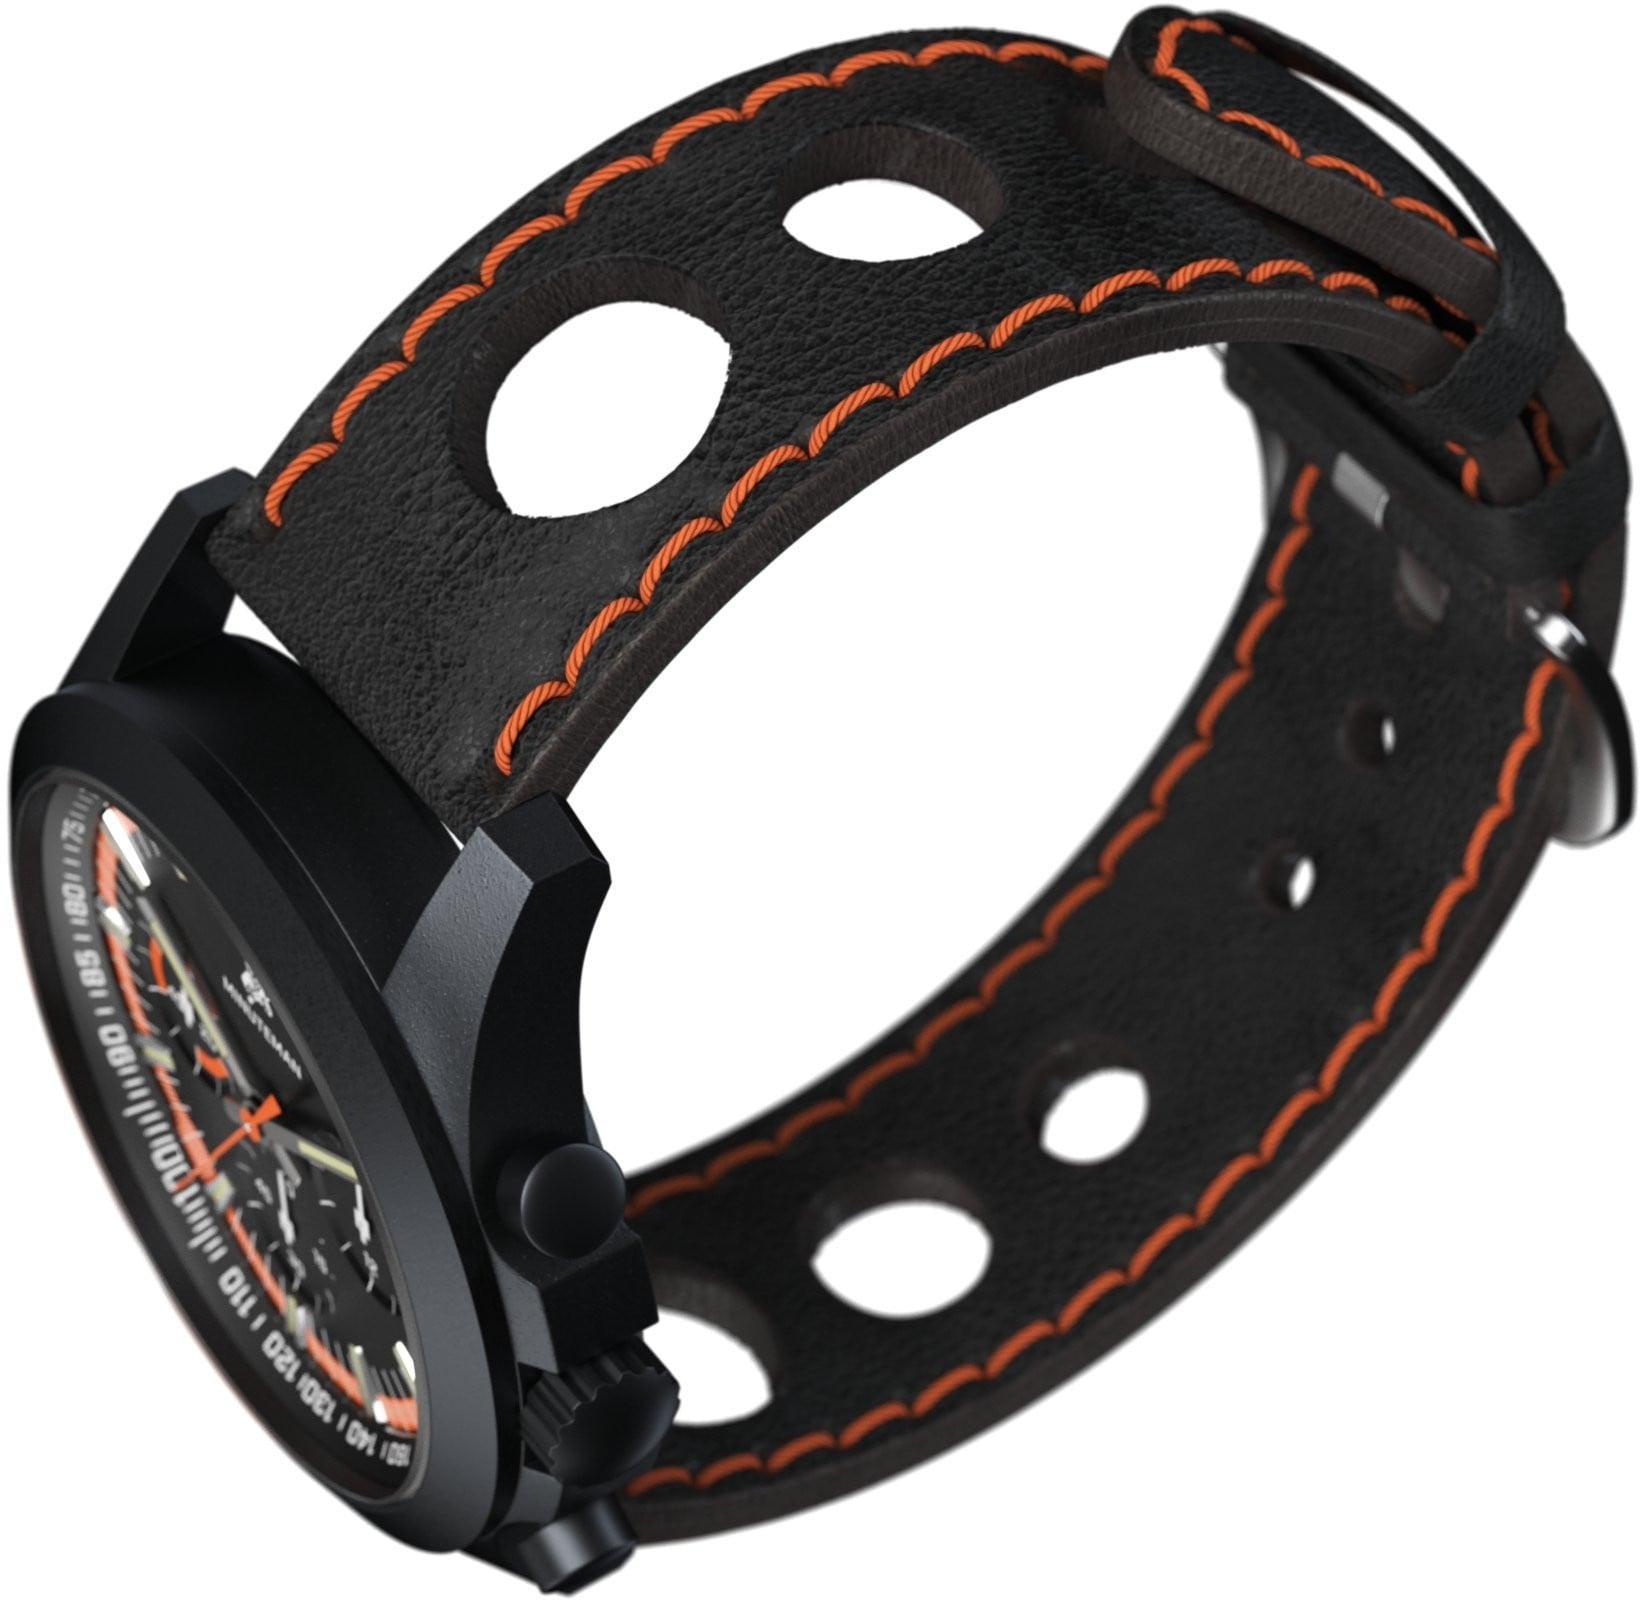 Minuteman Parker Chronograph Wristwatch Black/Orange Dial DLC (Pre Order) - The CGA Company